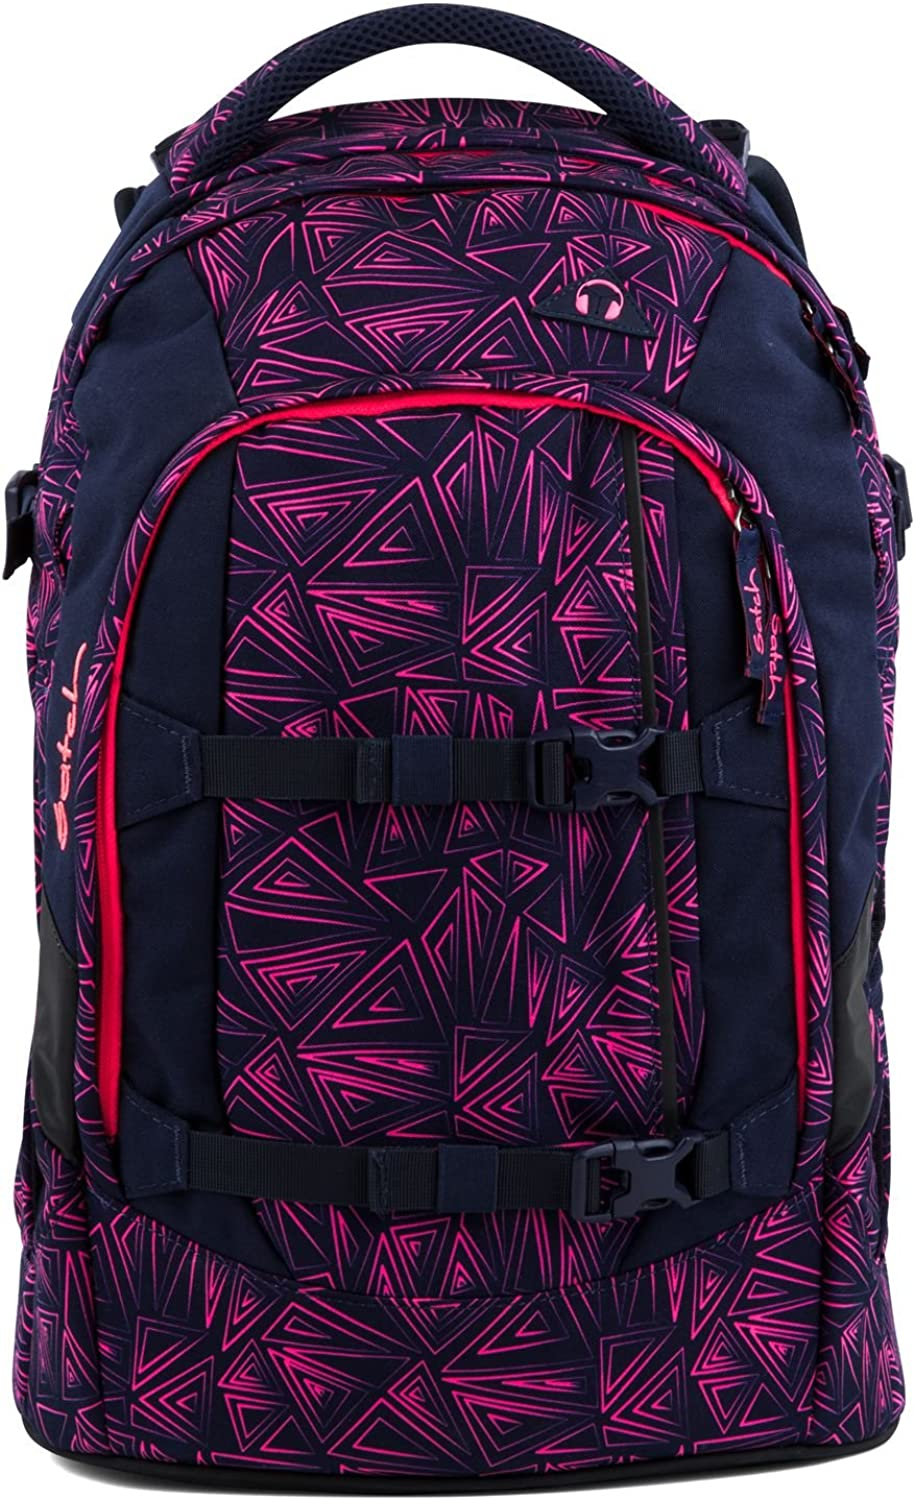 Fond of Bags Schoolbag Set Pink Dunkelblue